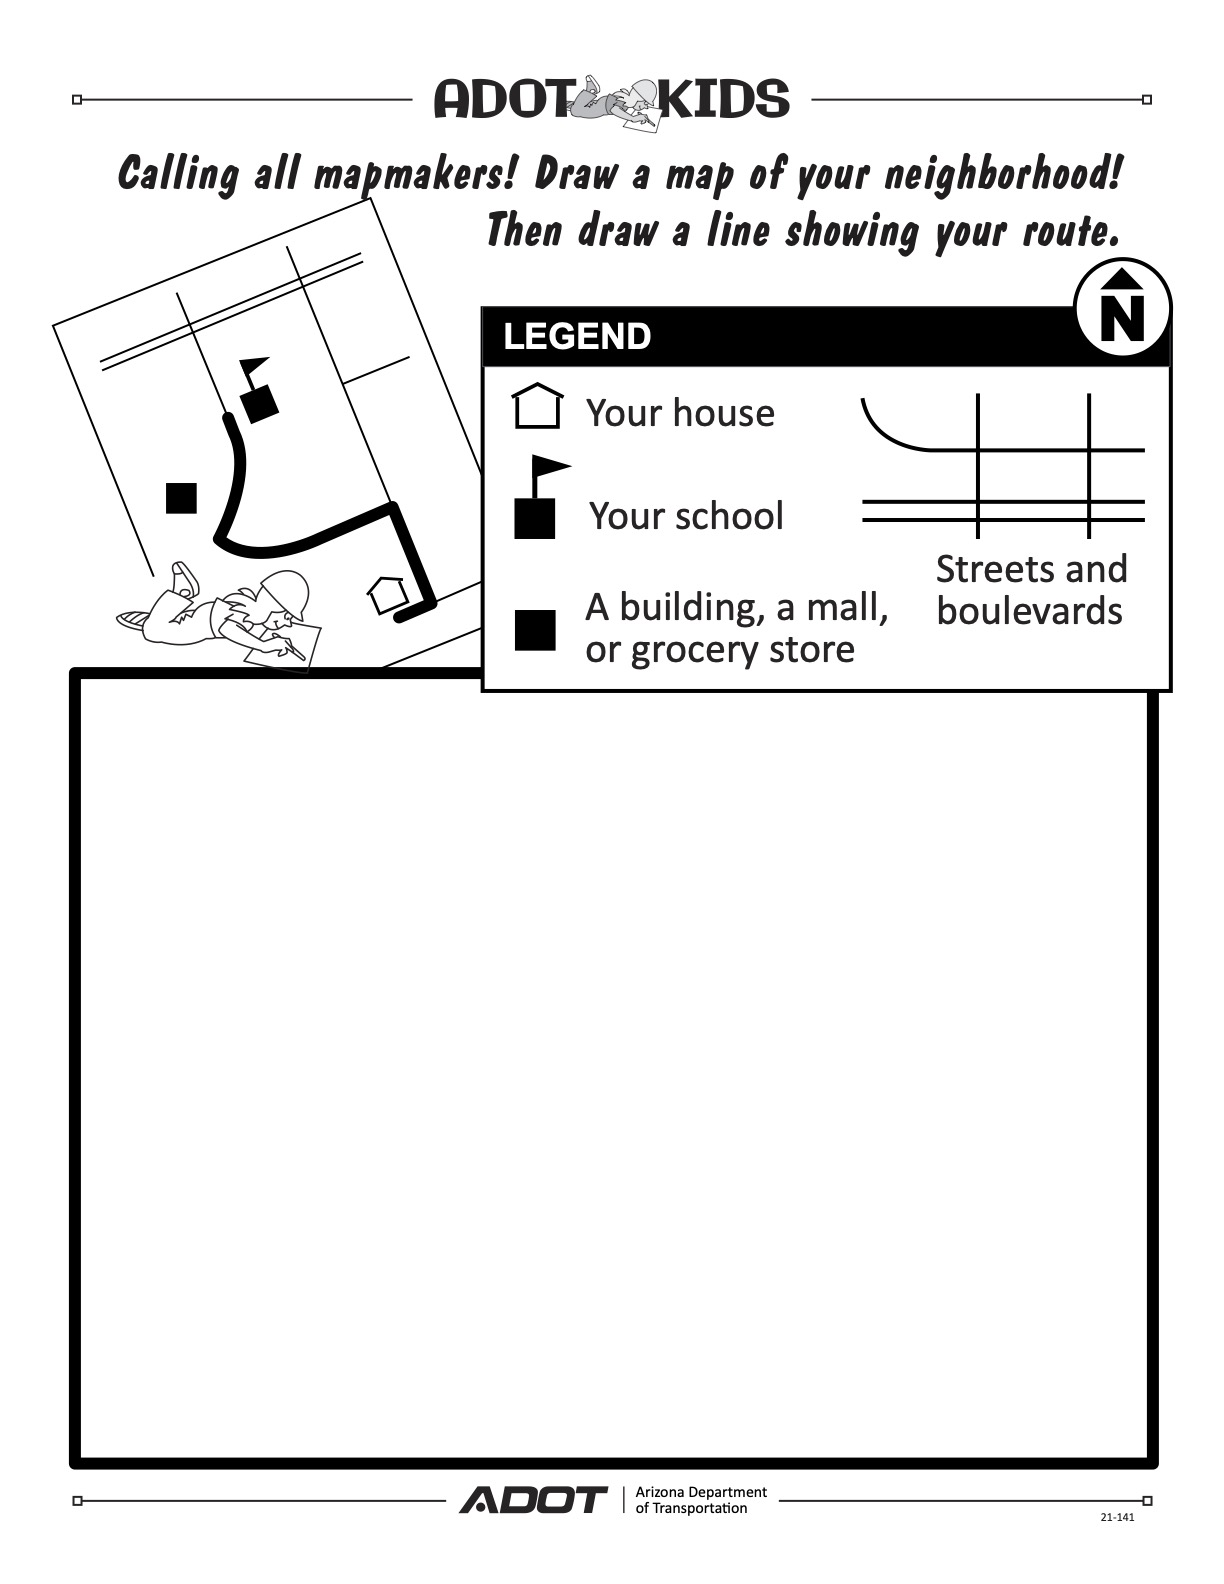 ADOT Kids bicycle safety draw-a-map activity safety tips